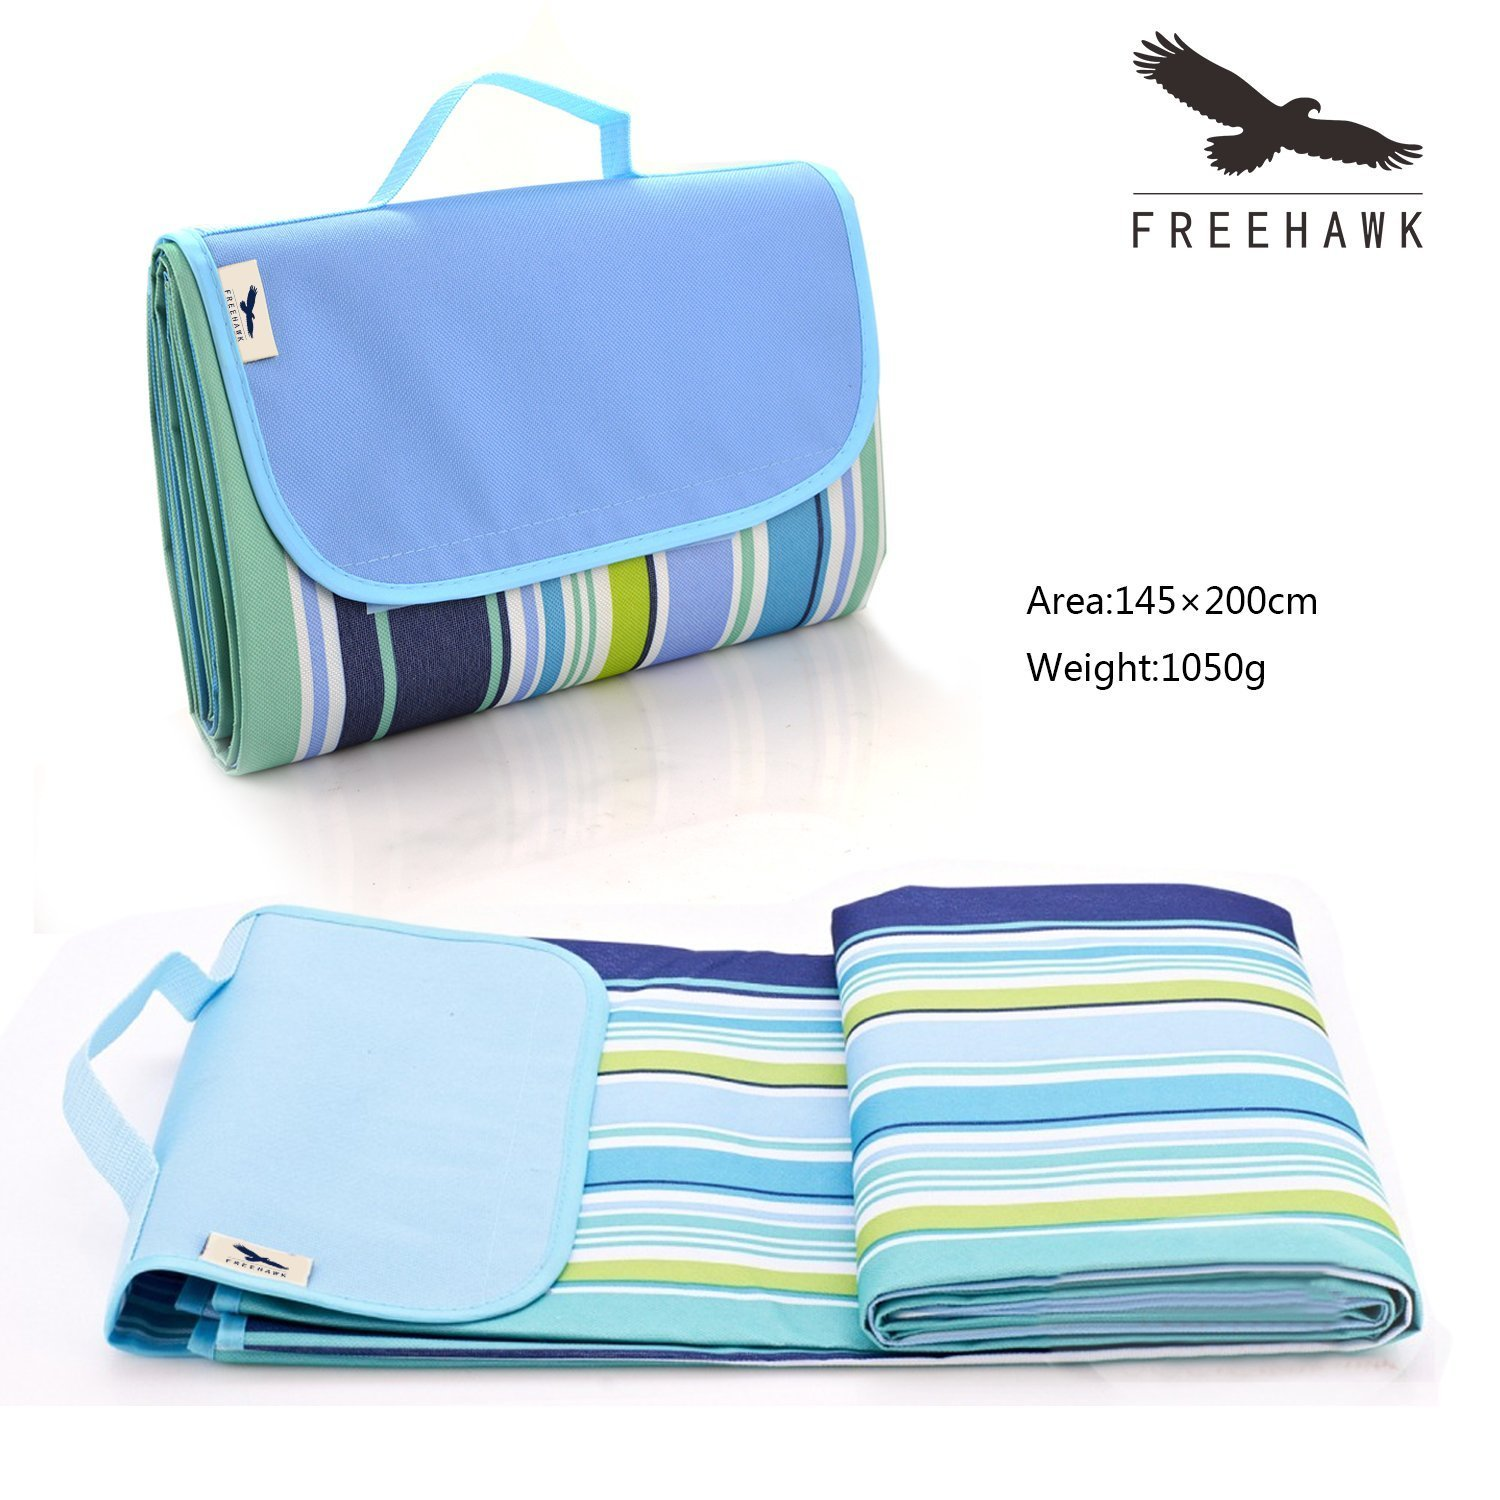 Beach Blanket/Foldable Picnic Blanket/Camping Mat/Camping Blanket Pad Cushion Mattress/Outdoor Blanket/Freehawk Handy Beach Mat with Carrying Strap,Lightweight Waterproof Nylon Oxford Cloth